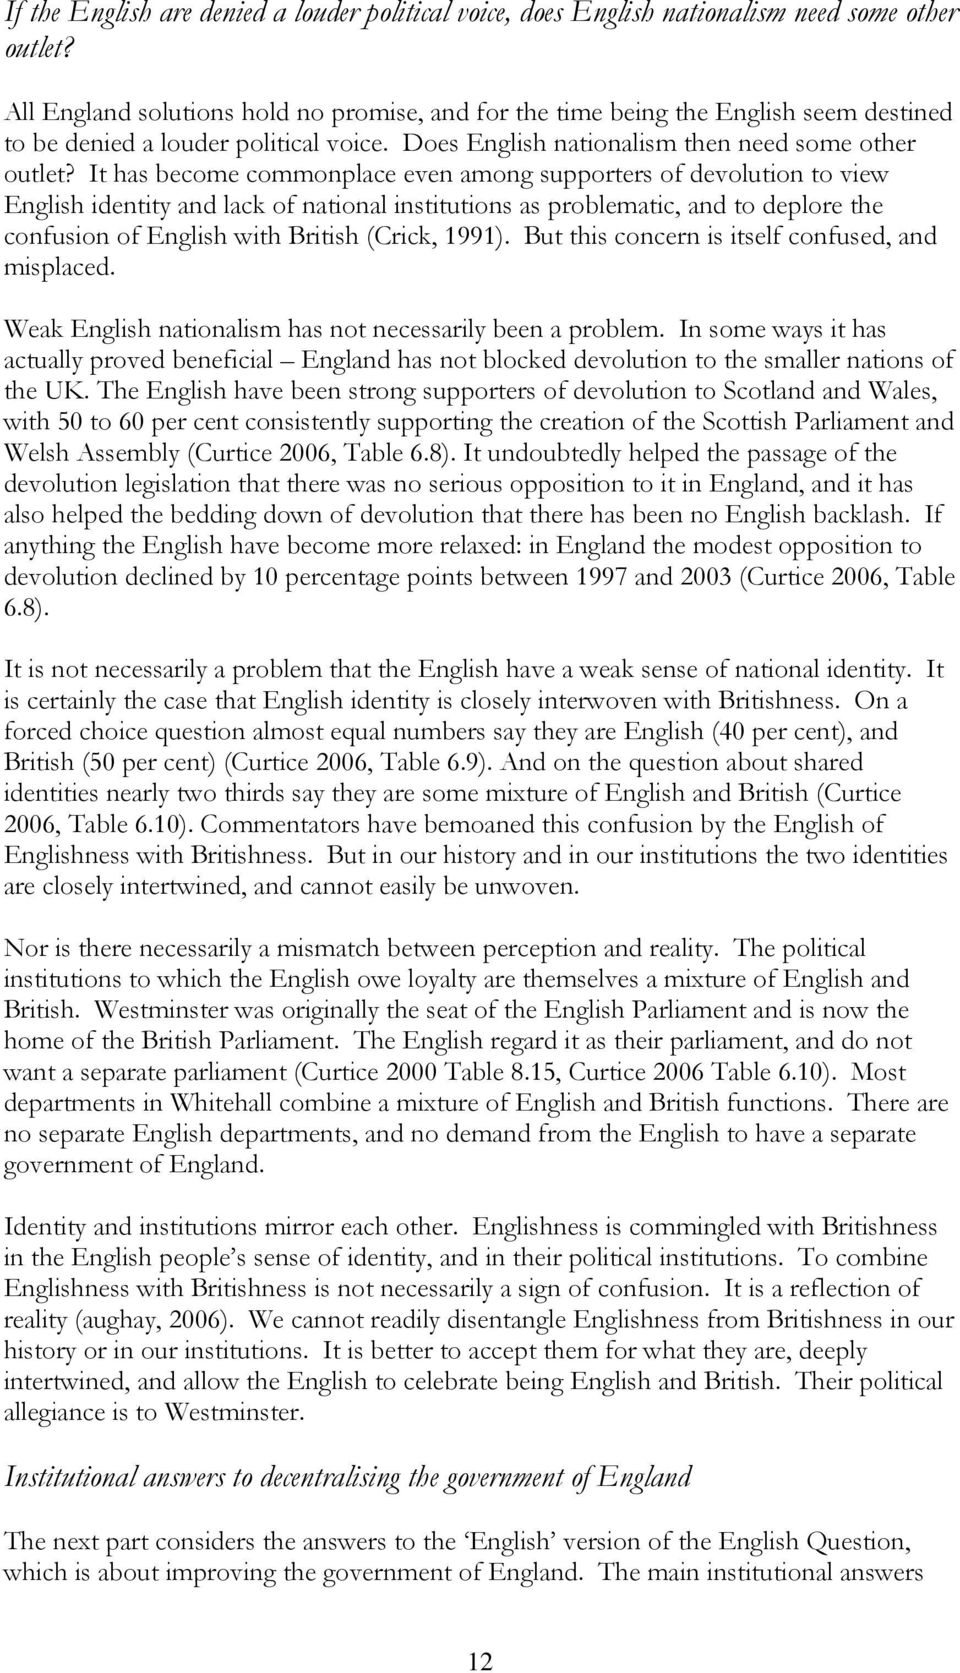 It has become commonplace even among supporters of devolution to view English identity and lack of national institutions as problematic, and to deplore the confusion of English with British (Crick,